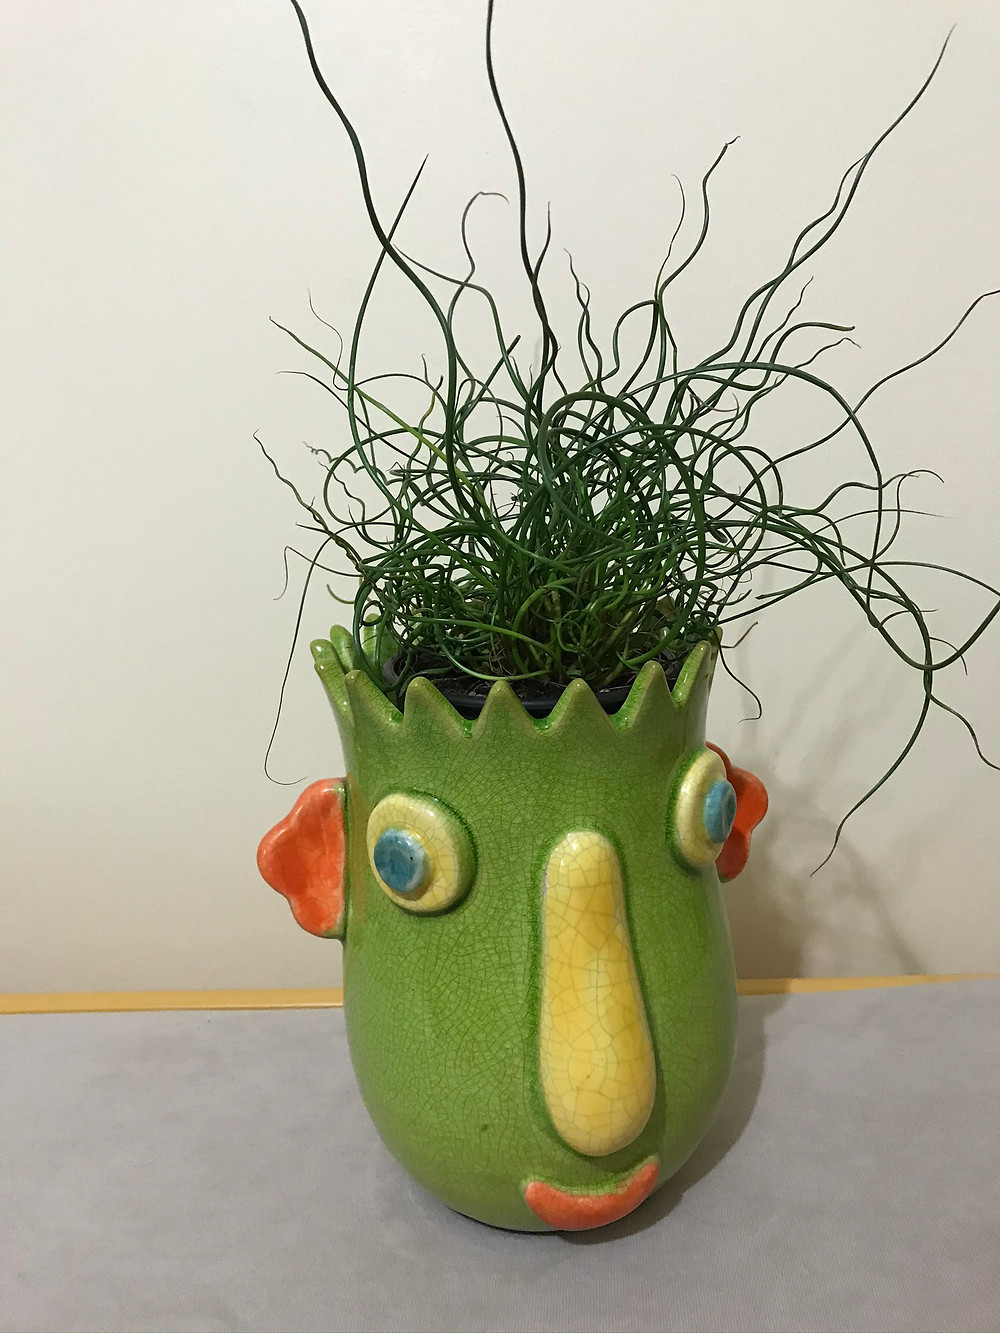 Bad Hair Bob, or corkscrew rush (Juncus effusus) grew well in a sunny room all winter long, and will be accompanying others in outdoor planters.